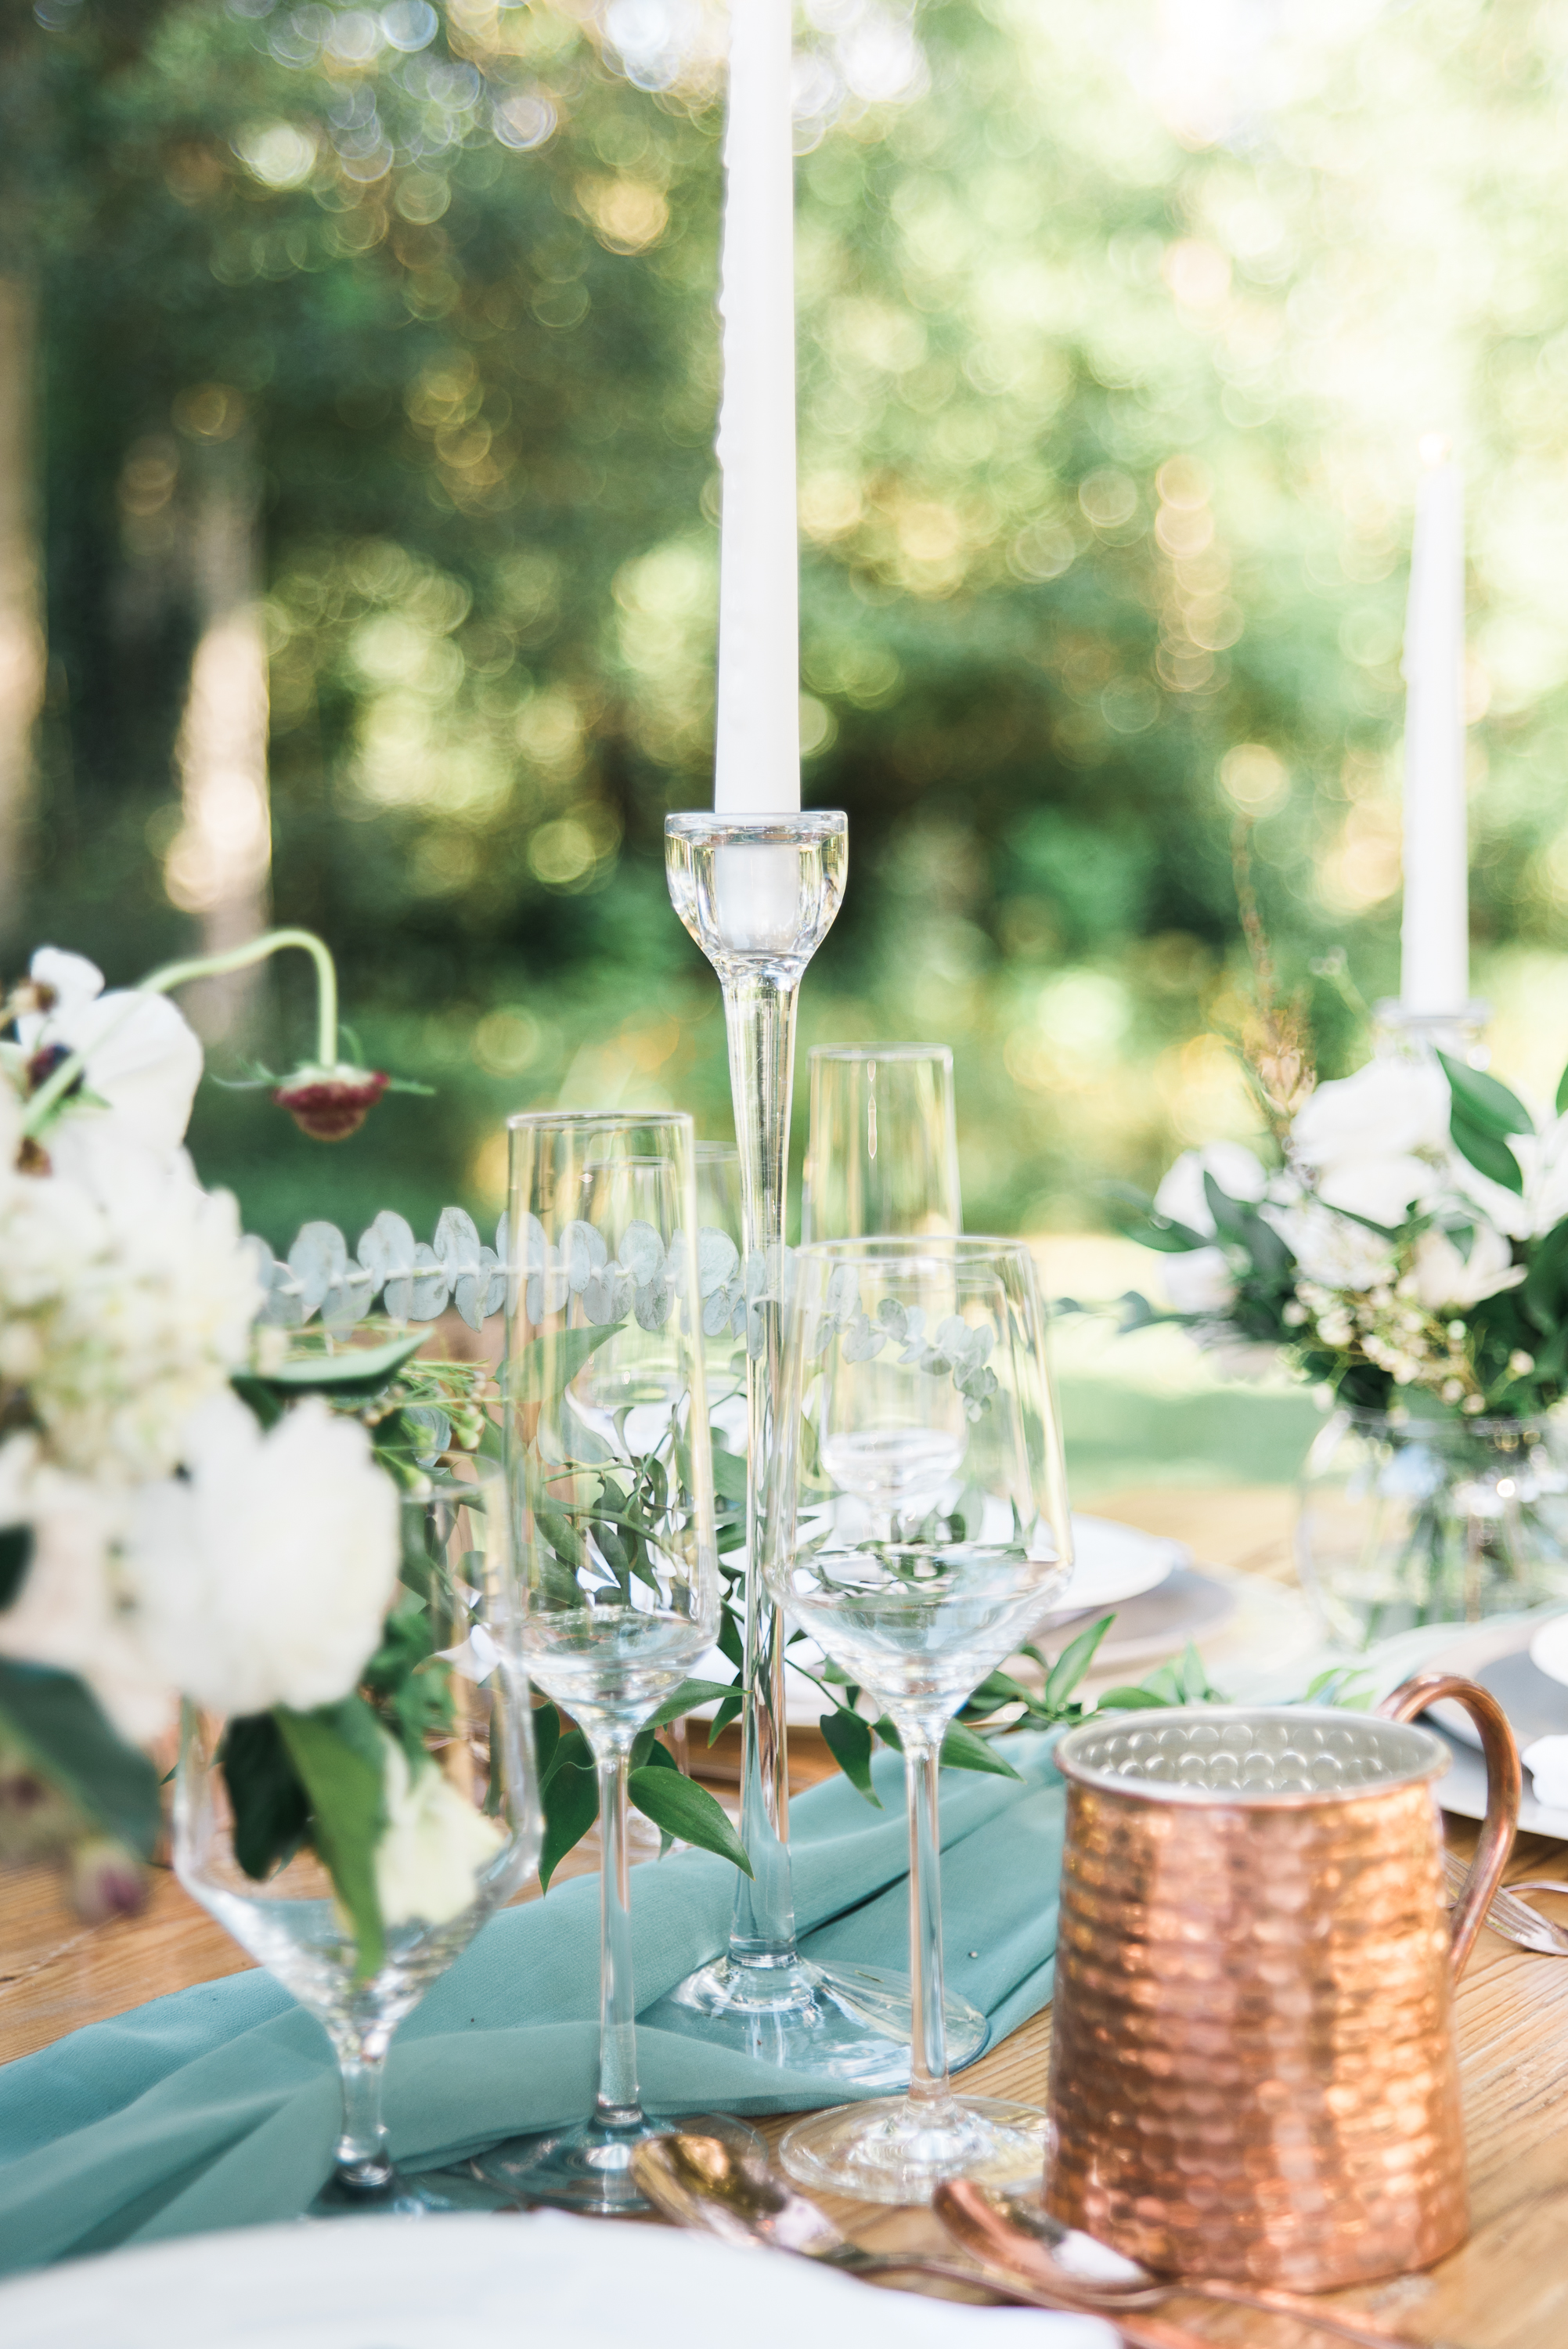 Gorgeous glassware for a wedding setup with a copper moscow mule mug.